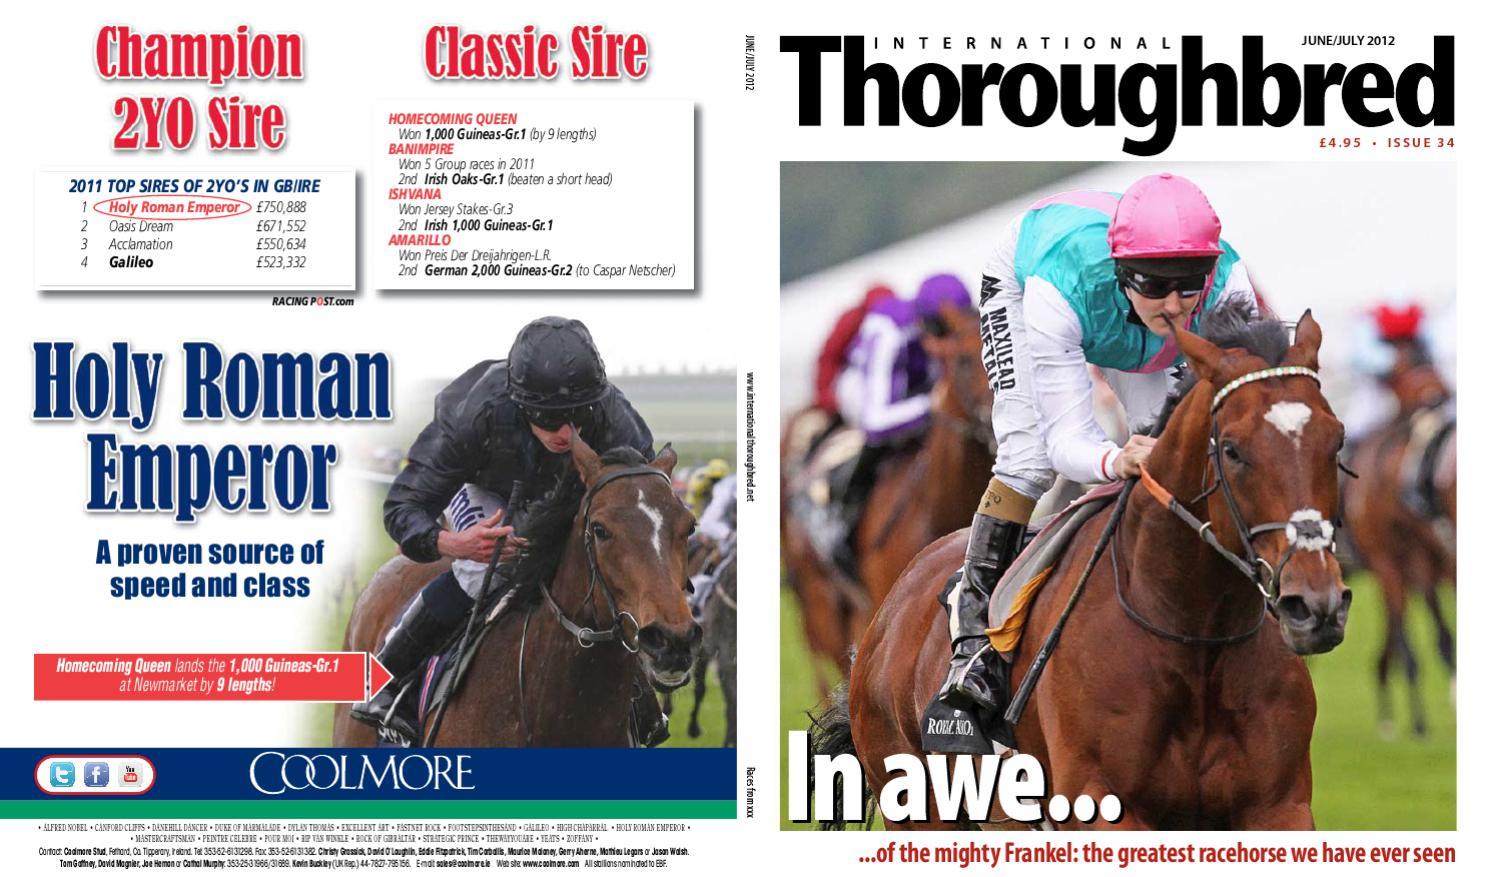 02e6363873d International Thoroughbred June July 2012 by Thoroughbred Publishing - issuu